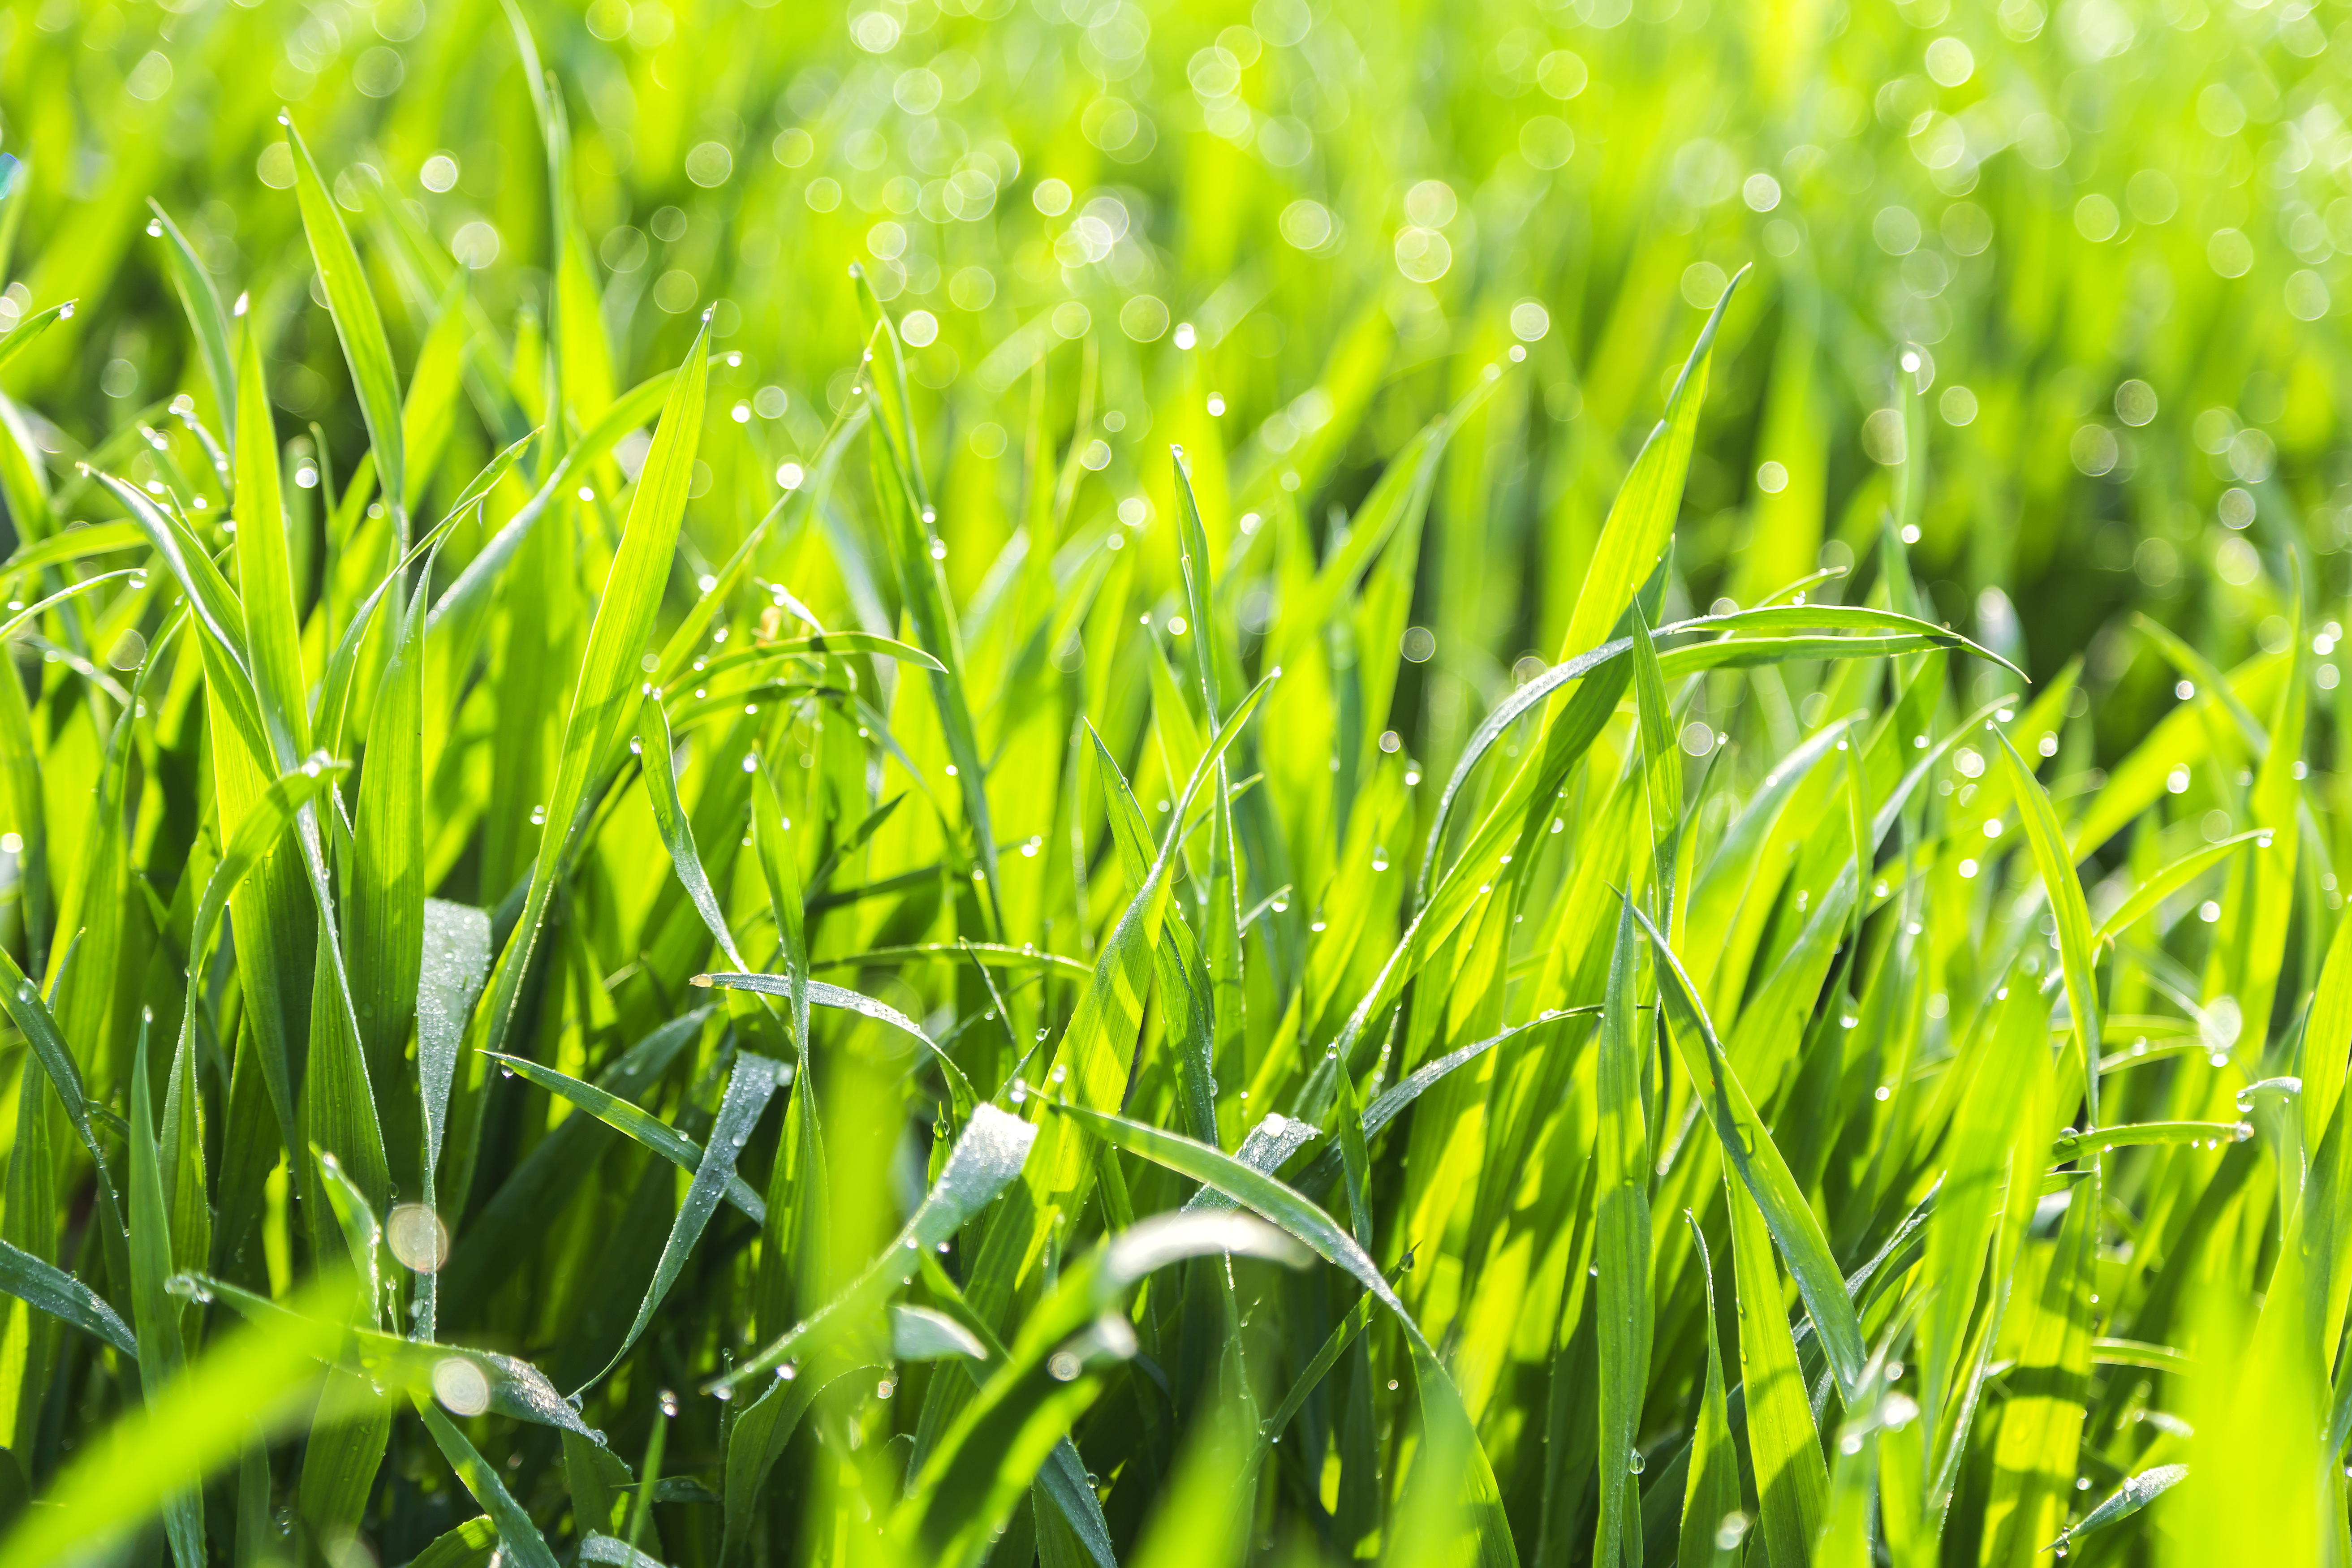 When Is it Too Late to Plant Grass? | Home Guides | SF Gate